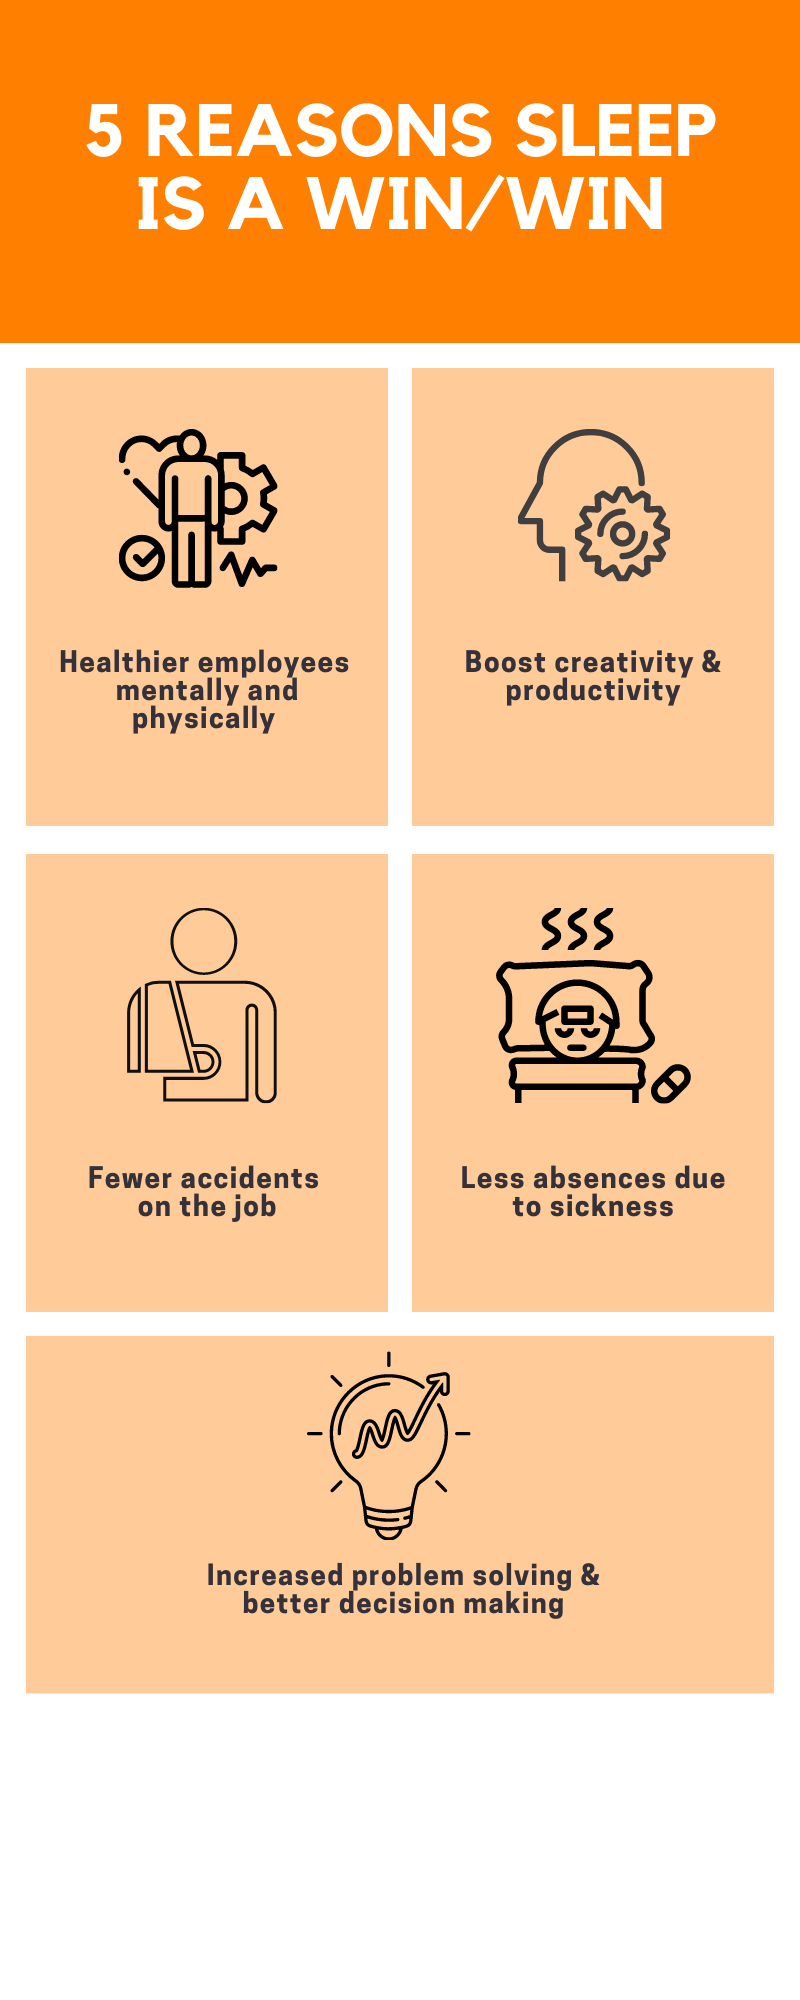 Why sleep is good for both employees and employers